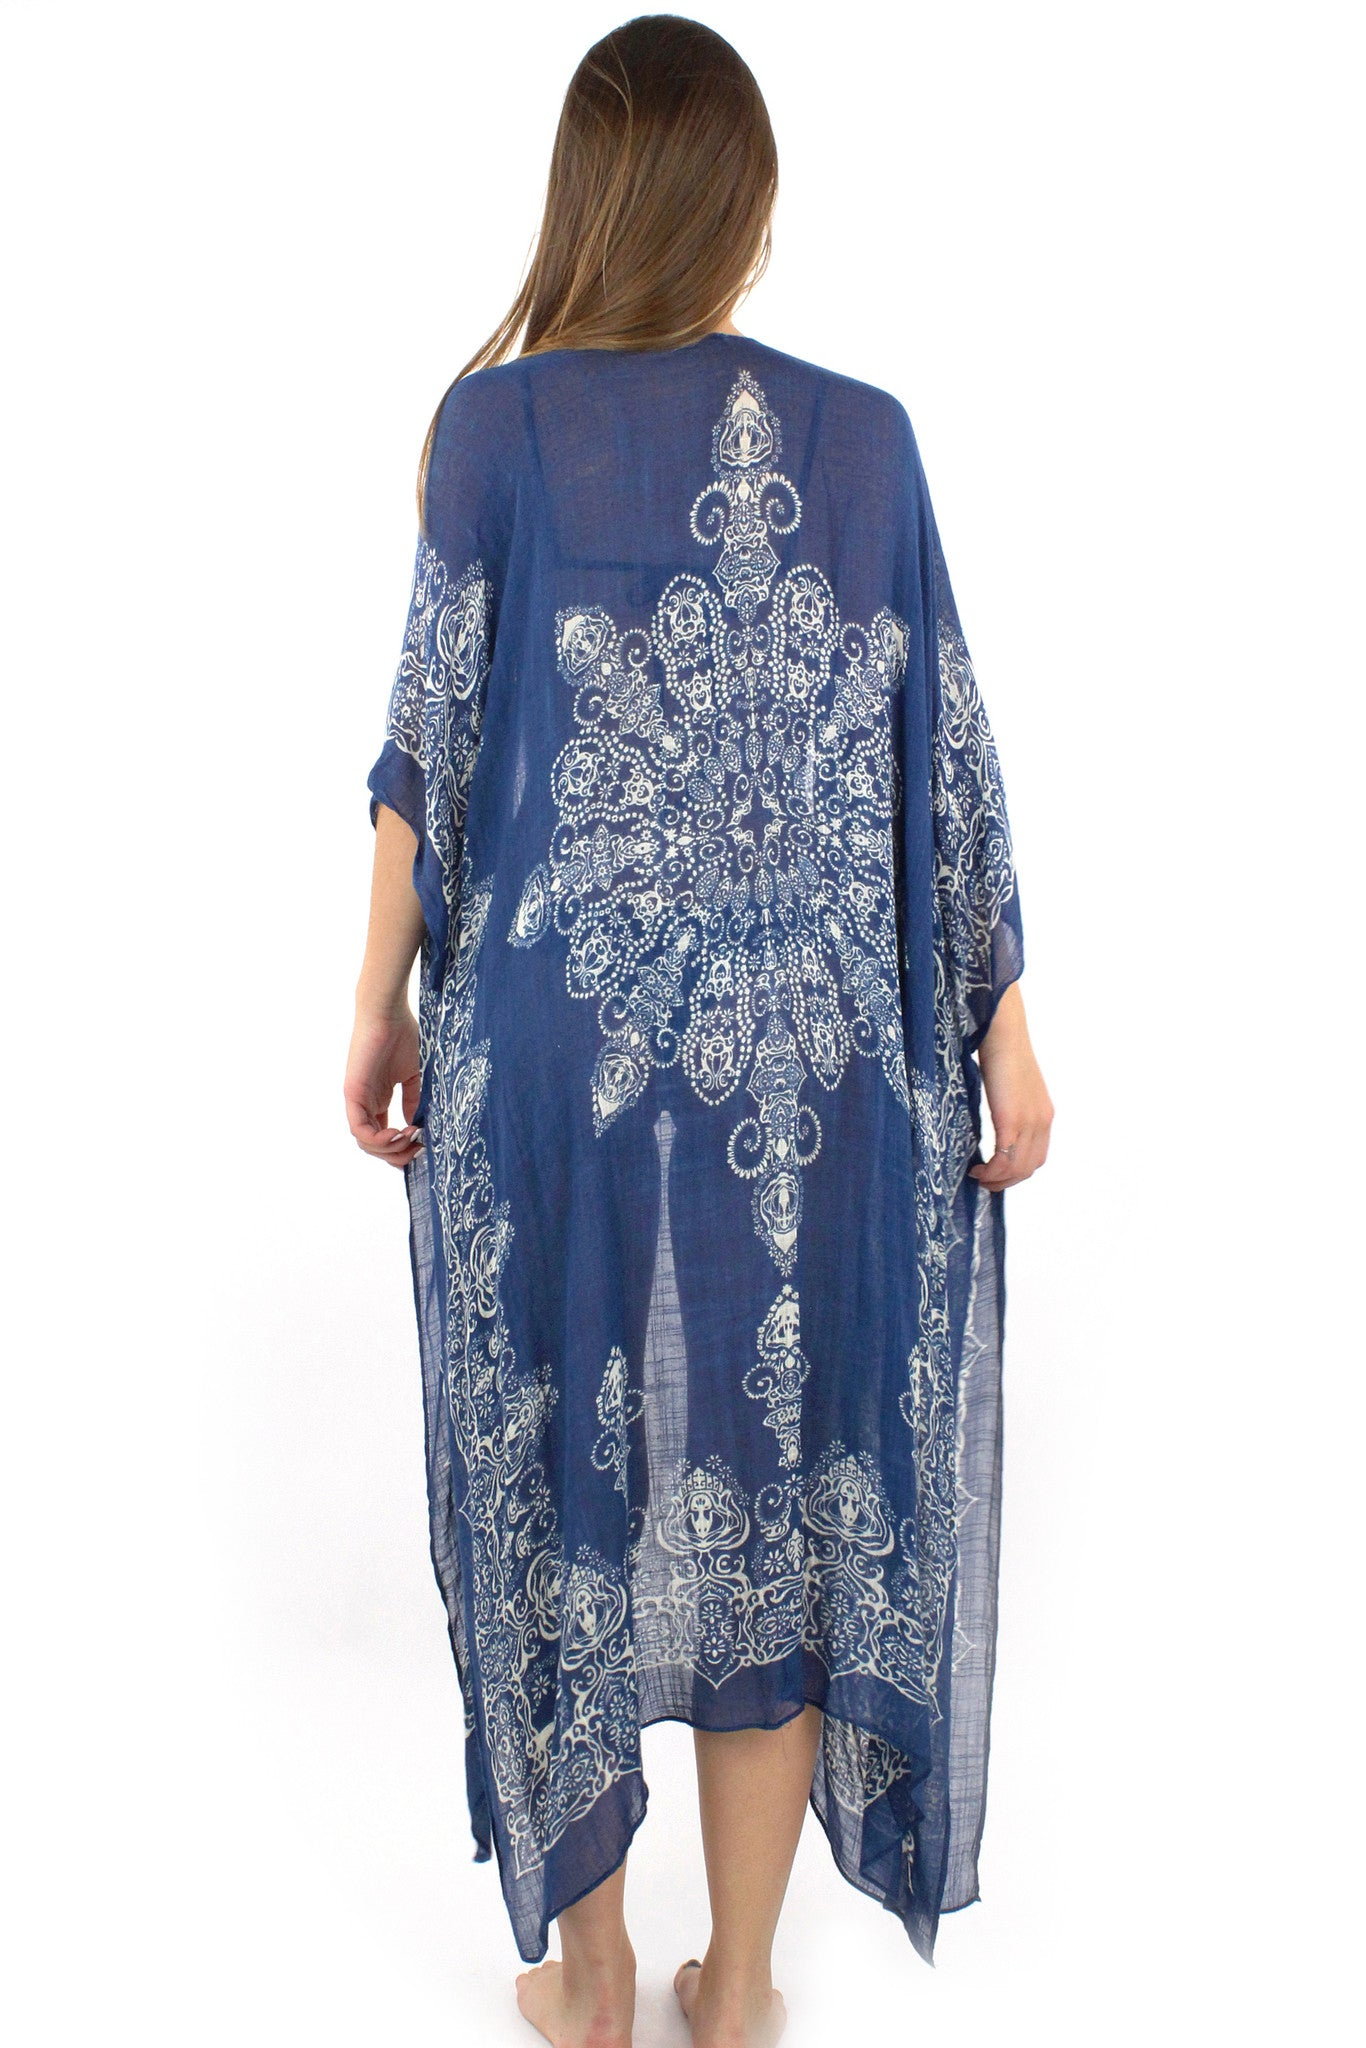 Medallion Print Long Shawl / Indigo